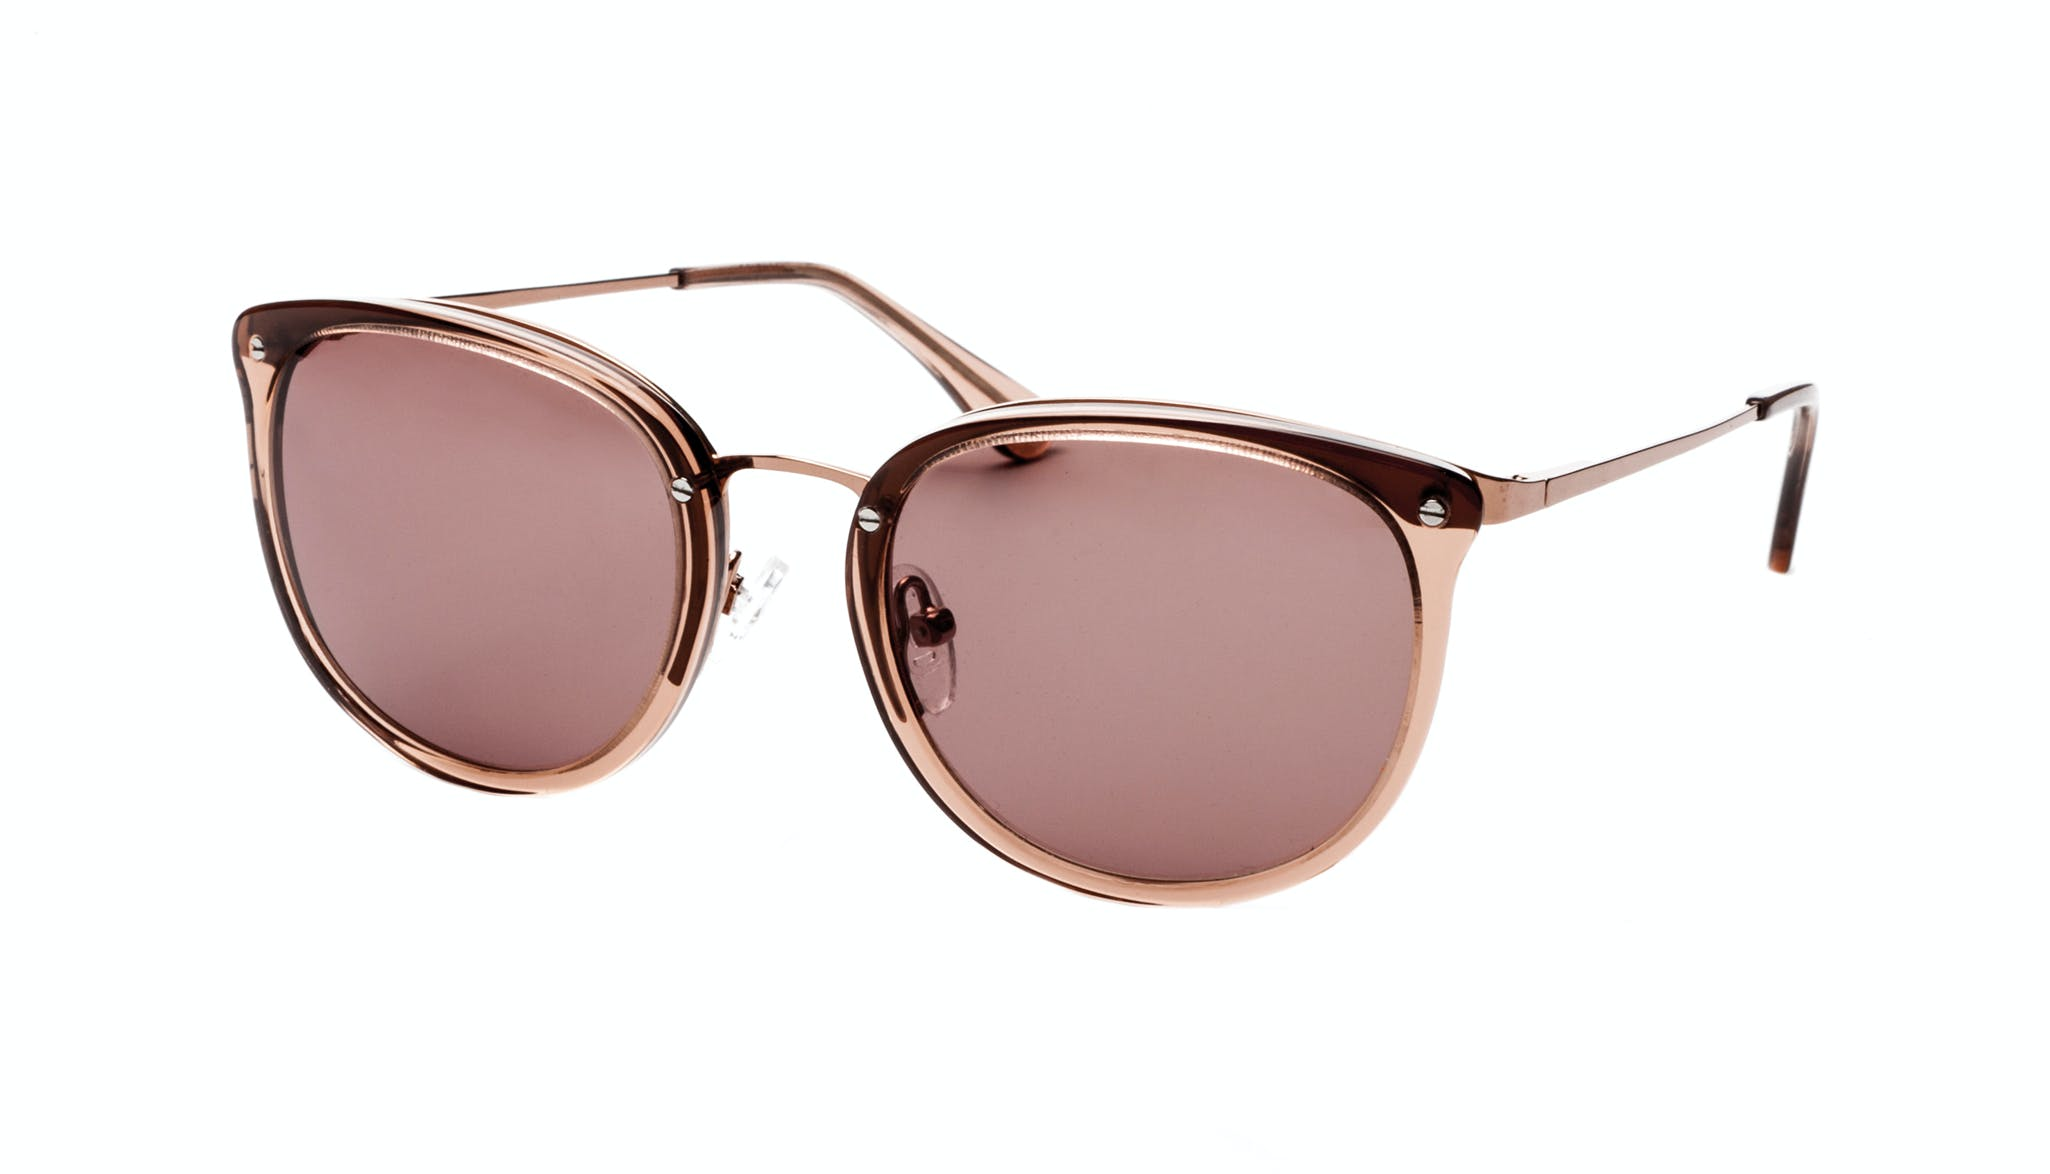 Affordable Fashion Glasses Square Round Sunglasses Women Amaze Rose Tilt